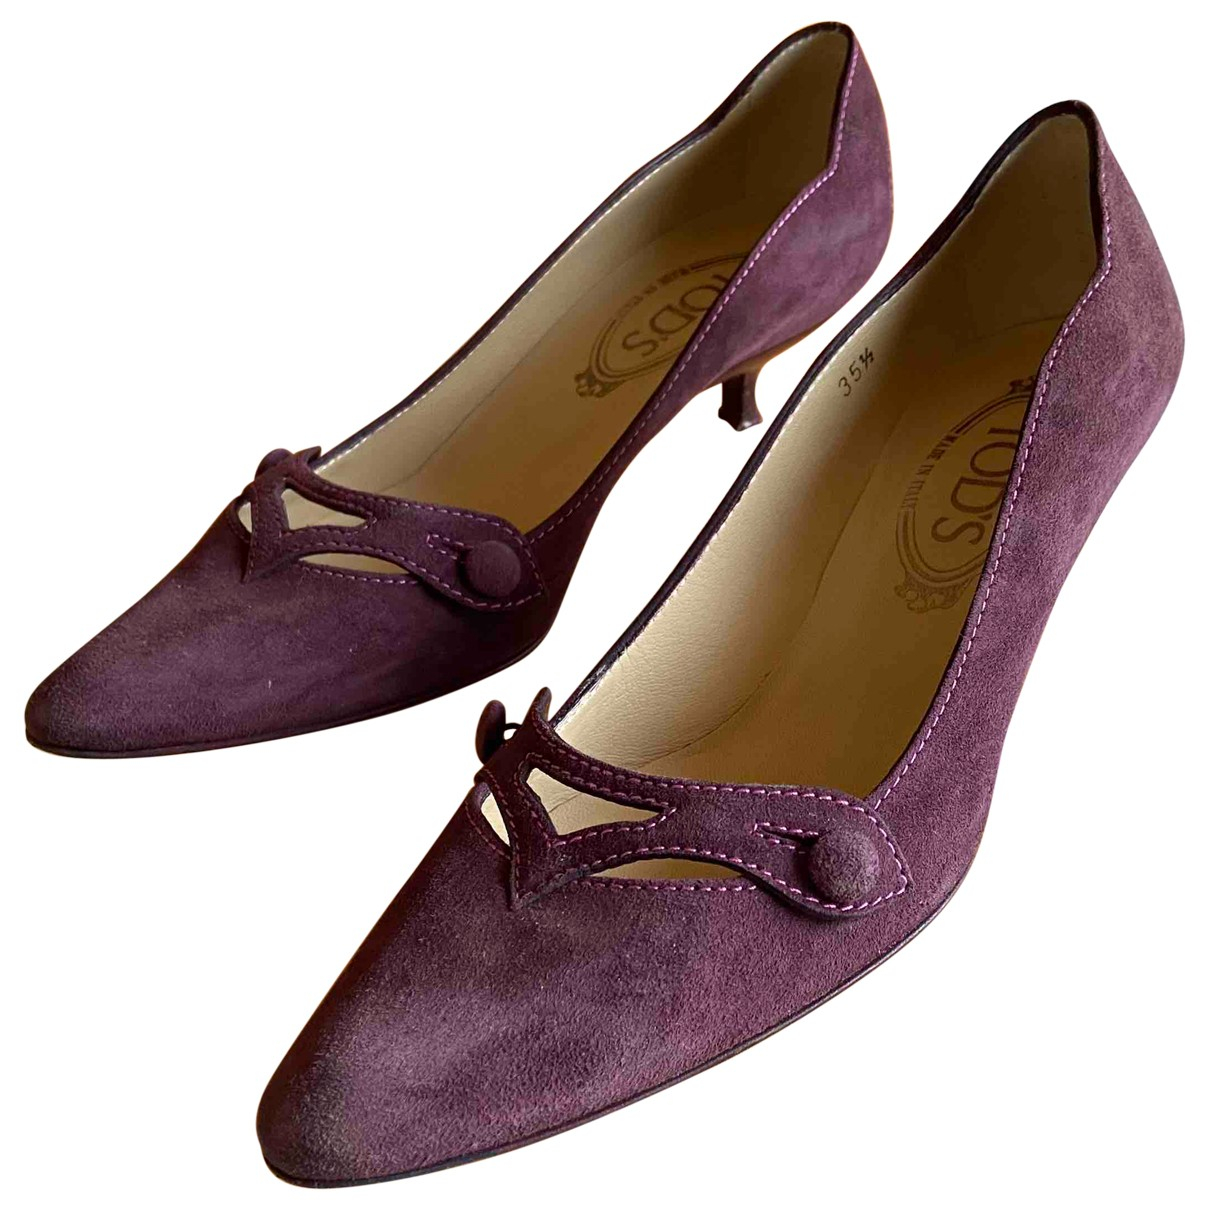 Tod's \N Burgundy Suede Heels for Women 35.5 IT